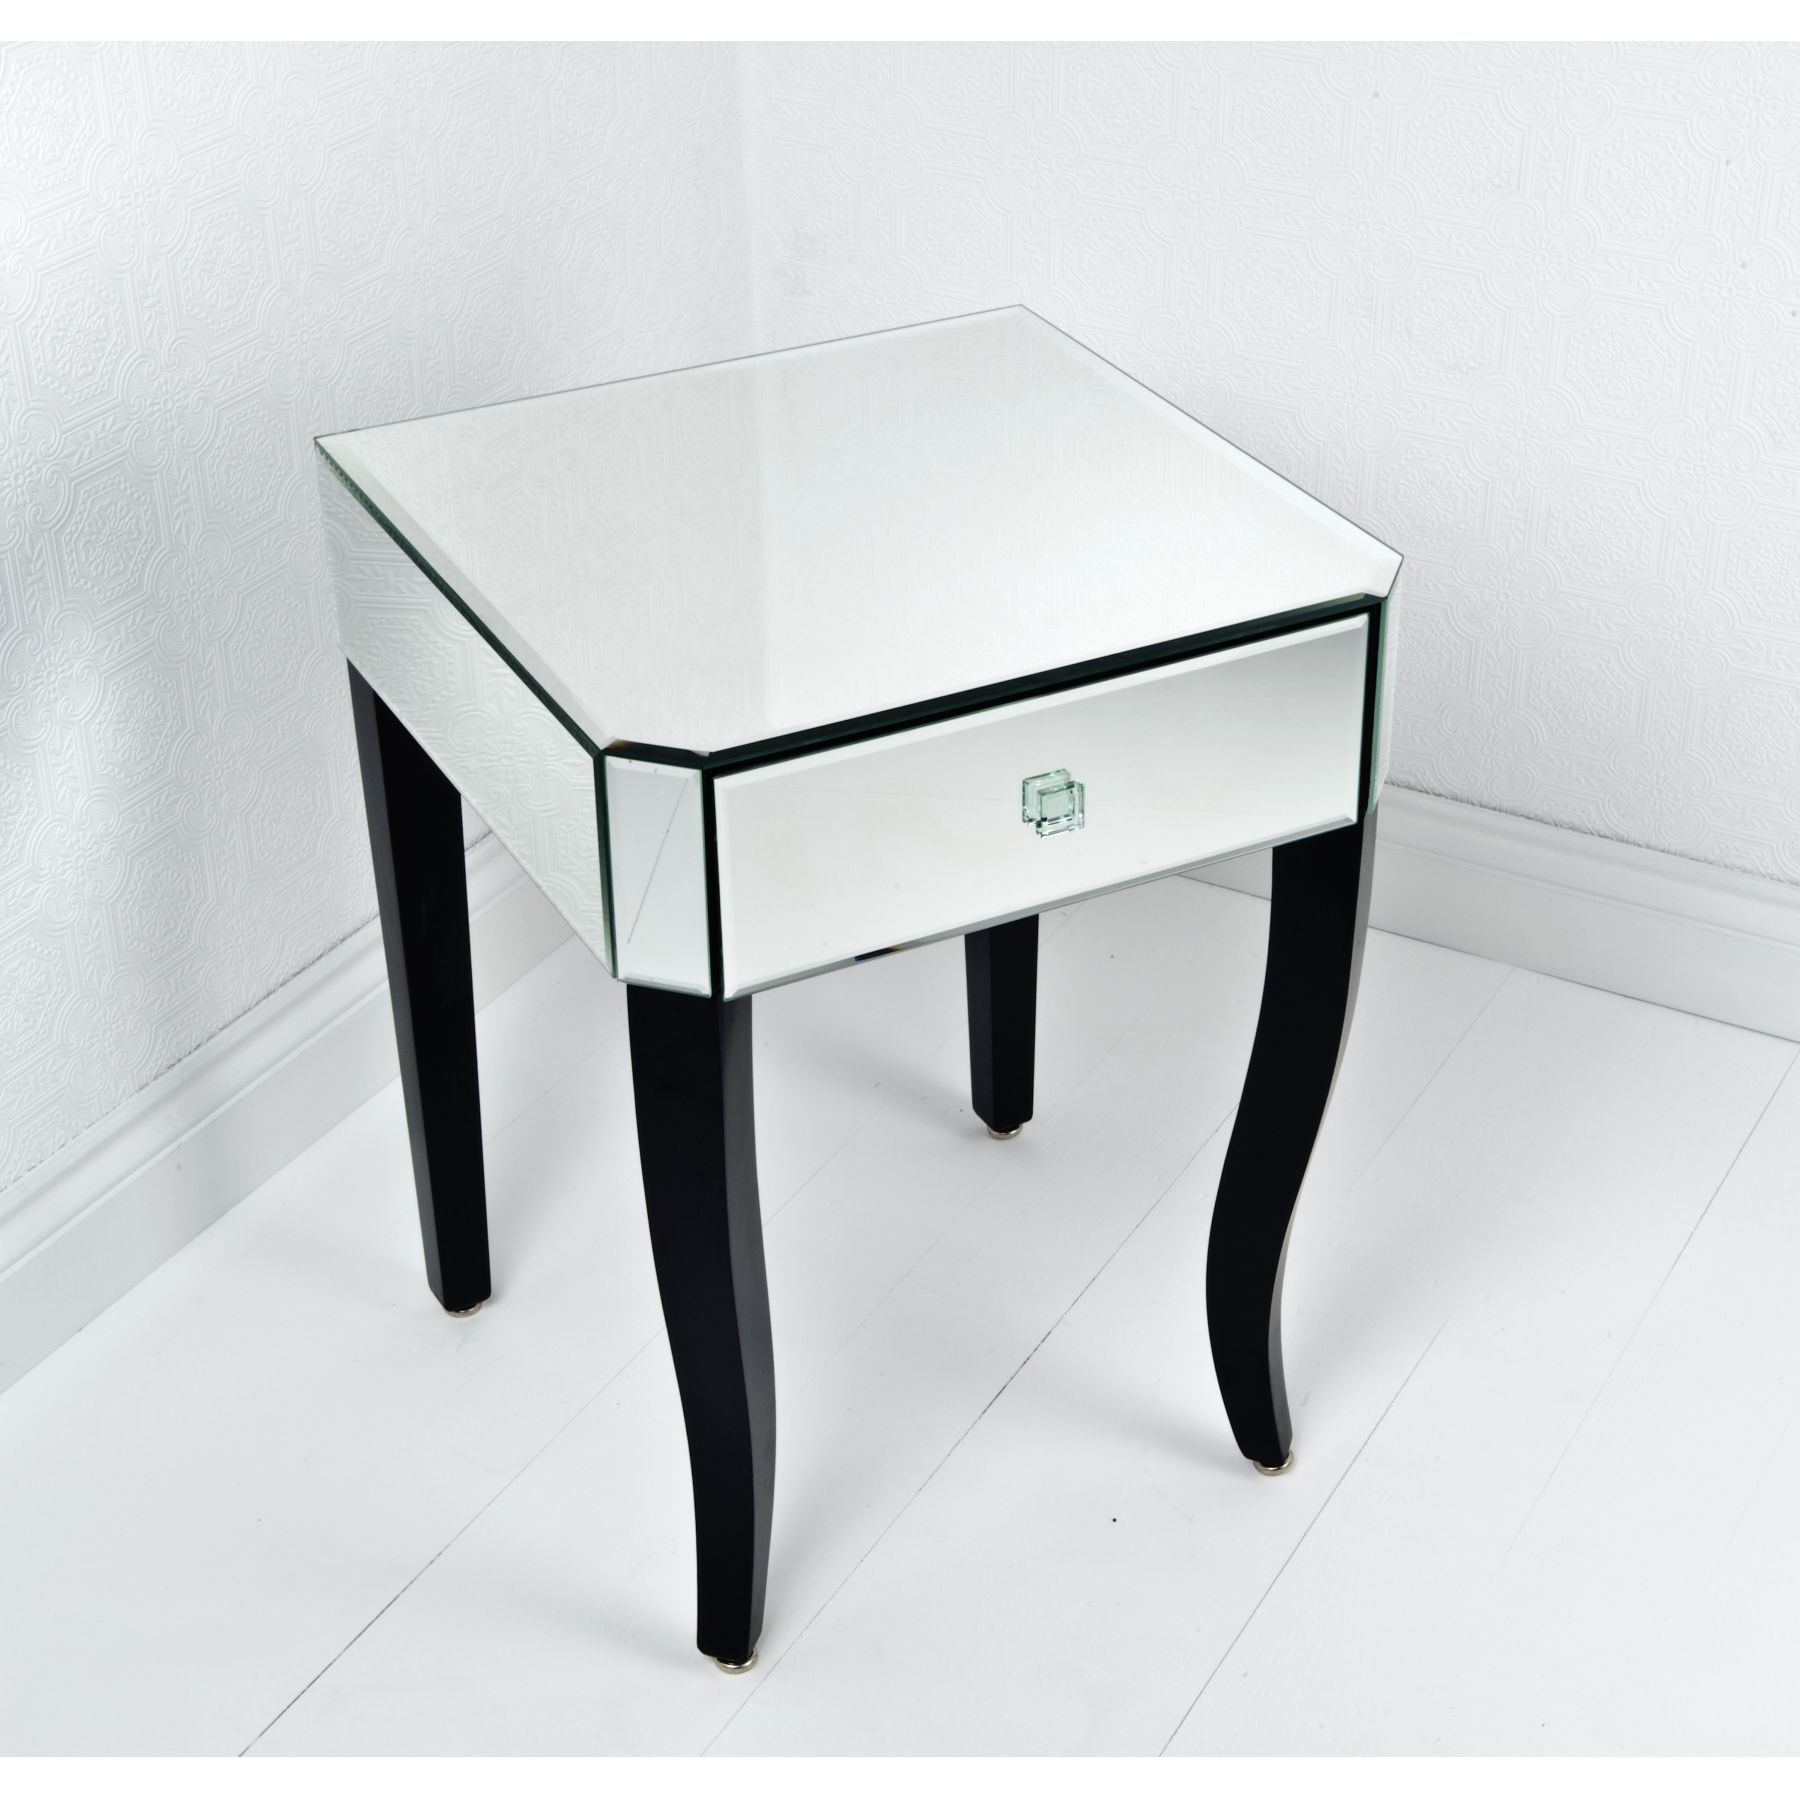 nightstand nightstands target mirrored accent table with drawer and black legs for home furniture ideas metal drum side pedestal console cabinet santorini double drawers full size